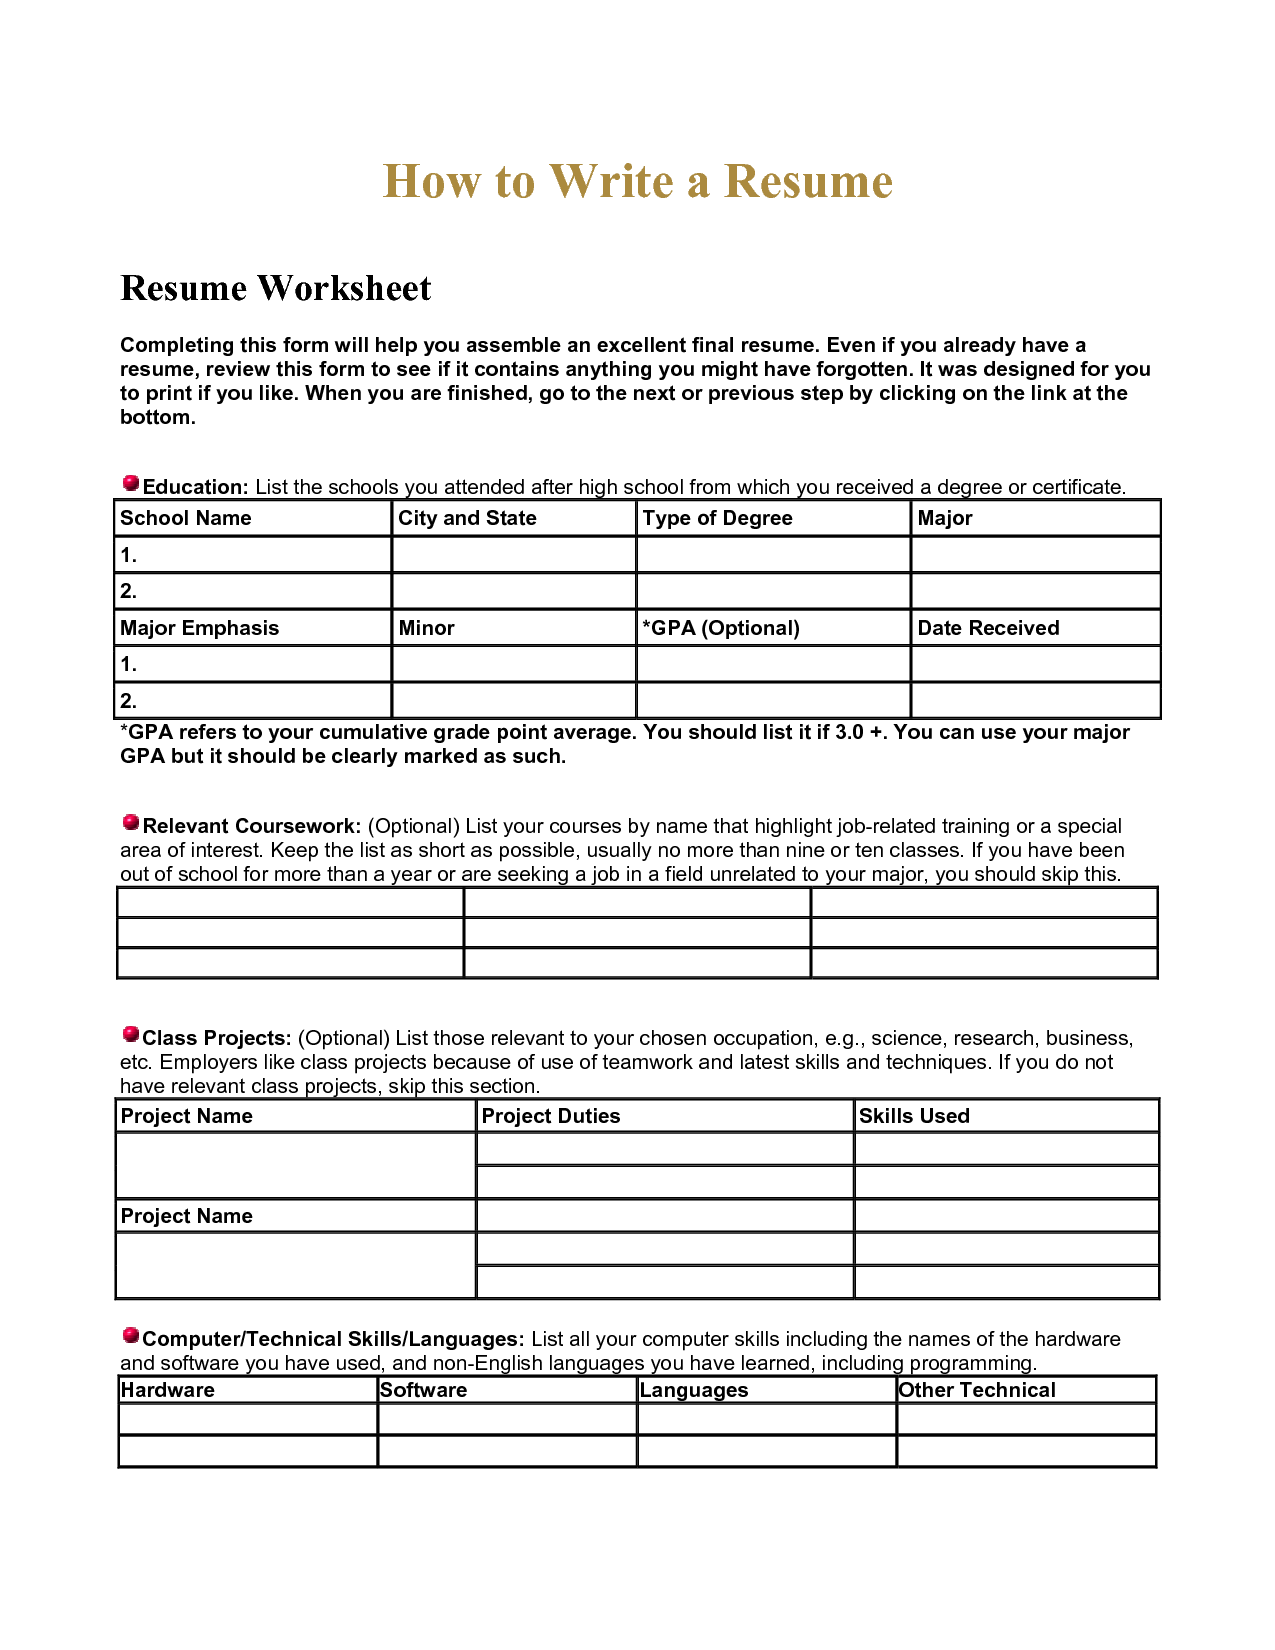 Resume Worksheet Using Your Academic Experiences High School